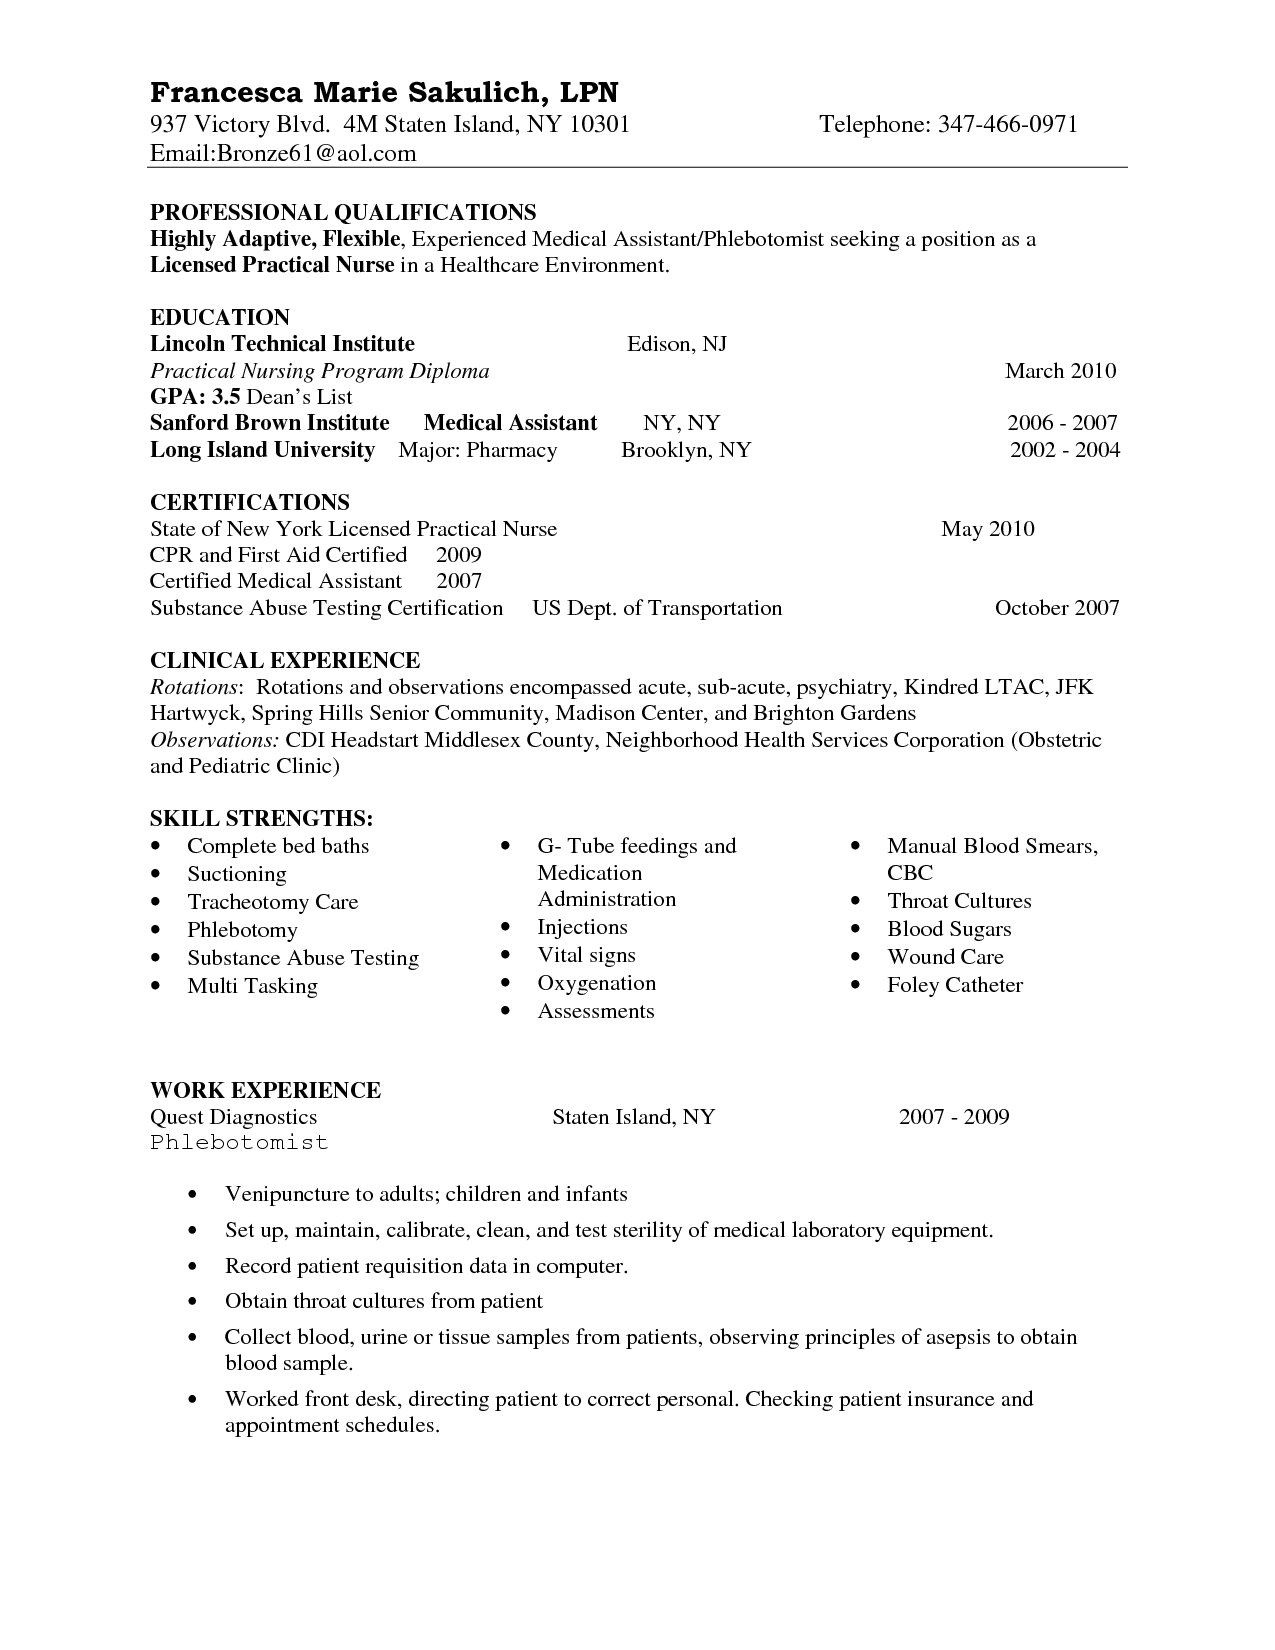 Nursing Resumes Examples Entry Level Lpn Resume Sample  Nursing  Pinterest  Nursing